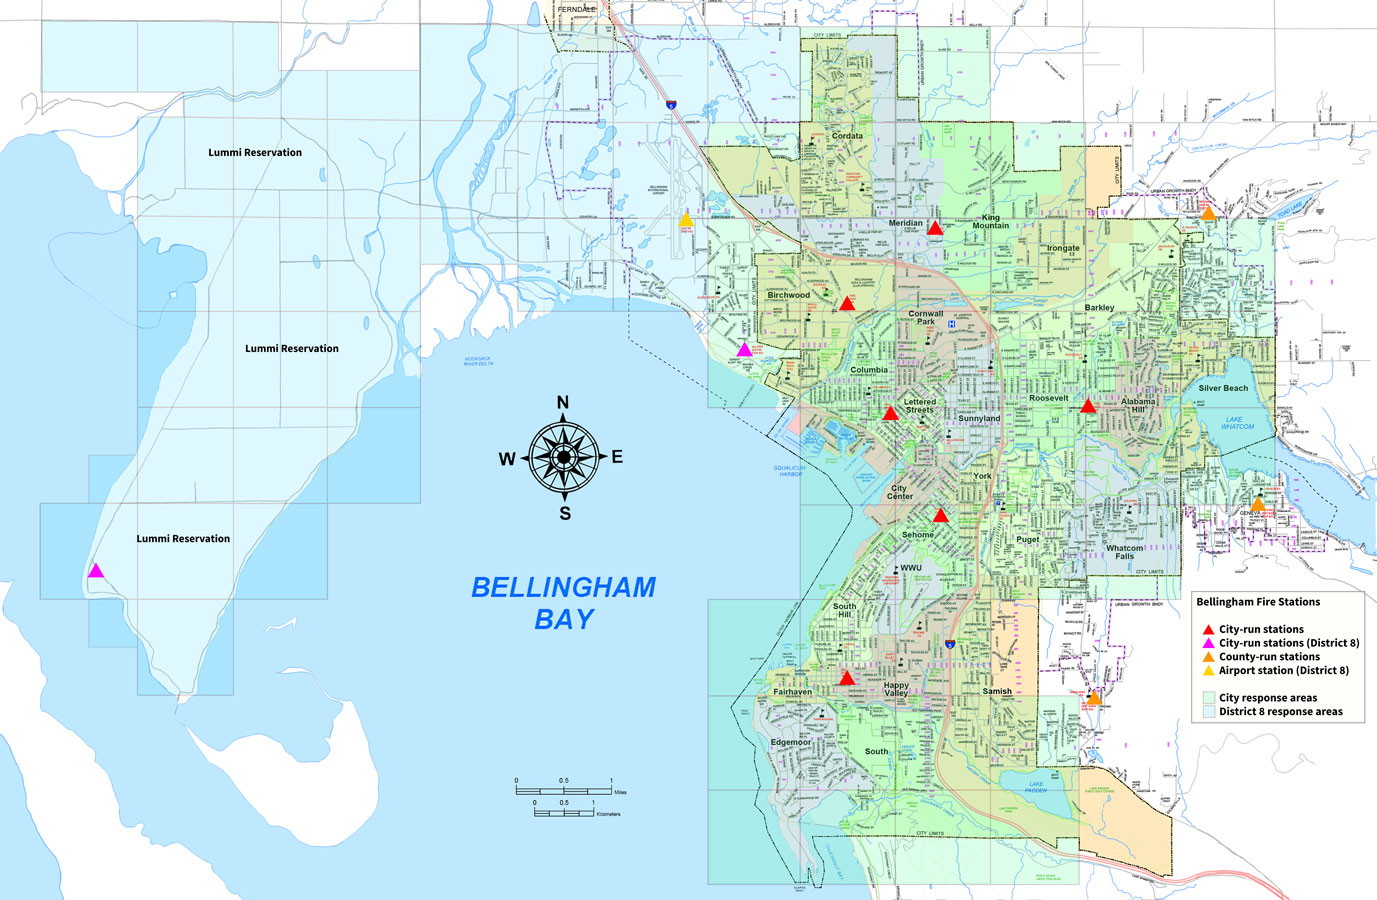 https://giovanniroverso.com/blog/2019/02/21/bellingham-fire-department-neighborhood-count-map/